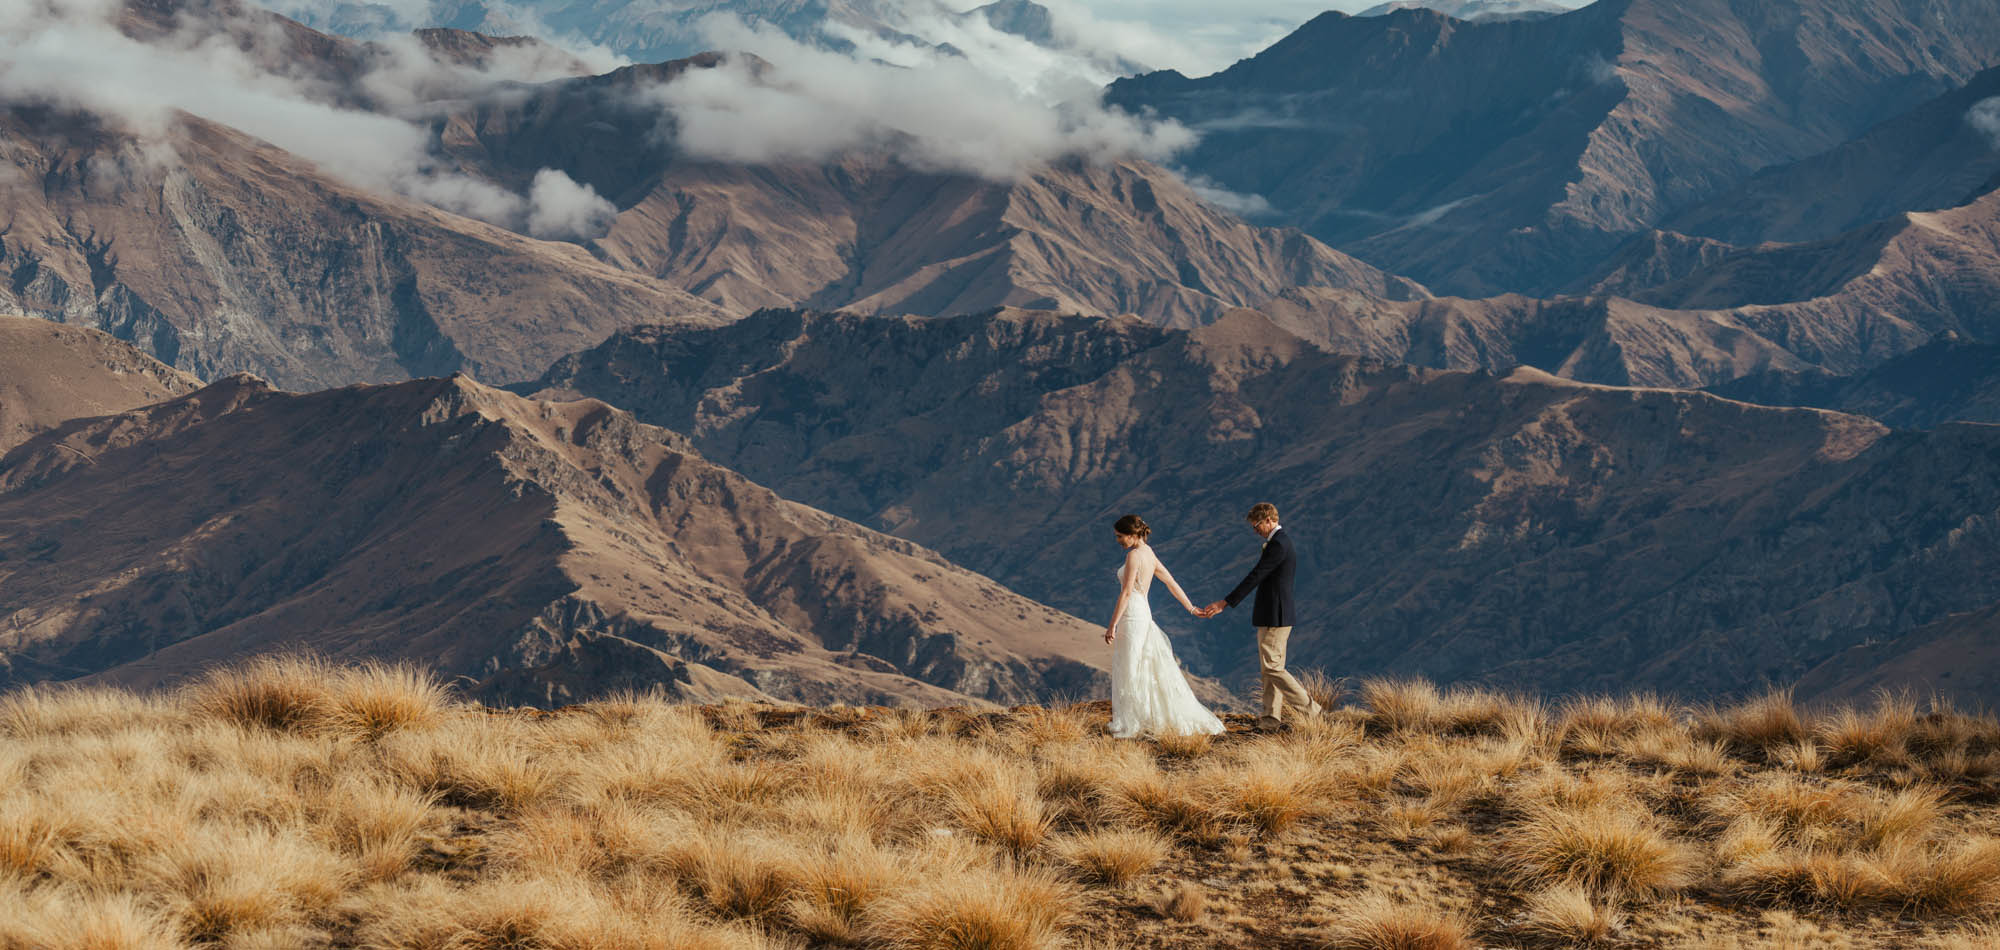 Vanguard peak wedding, spectacular mountain locations, mountain wedding, Queenstown mountain wedding photography